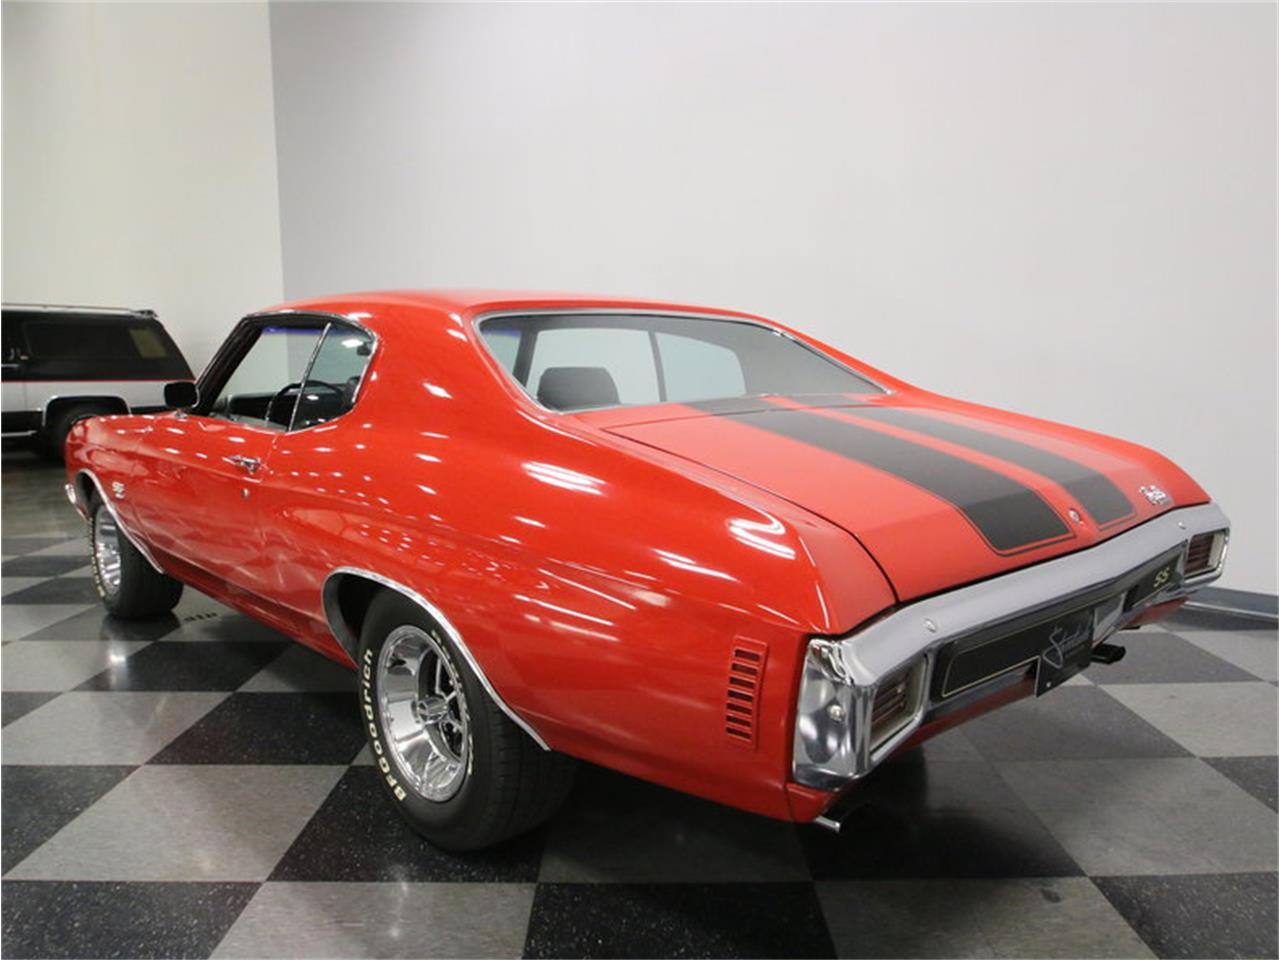 Large Picture of '70 Chevelle SS located in Tennessee - $45,995.00 Offered by Streetside Classics - Nashville - MFNU